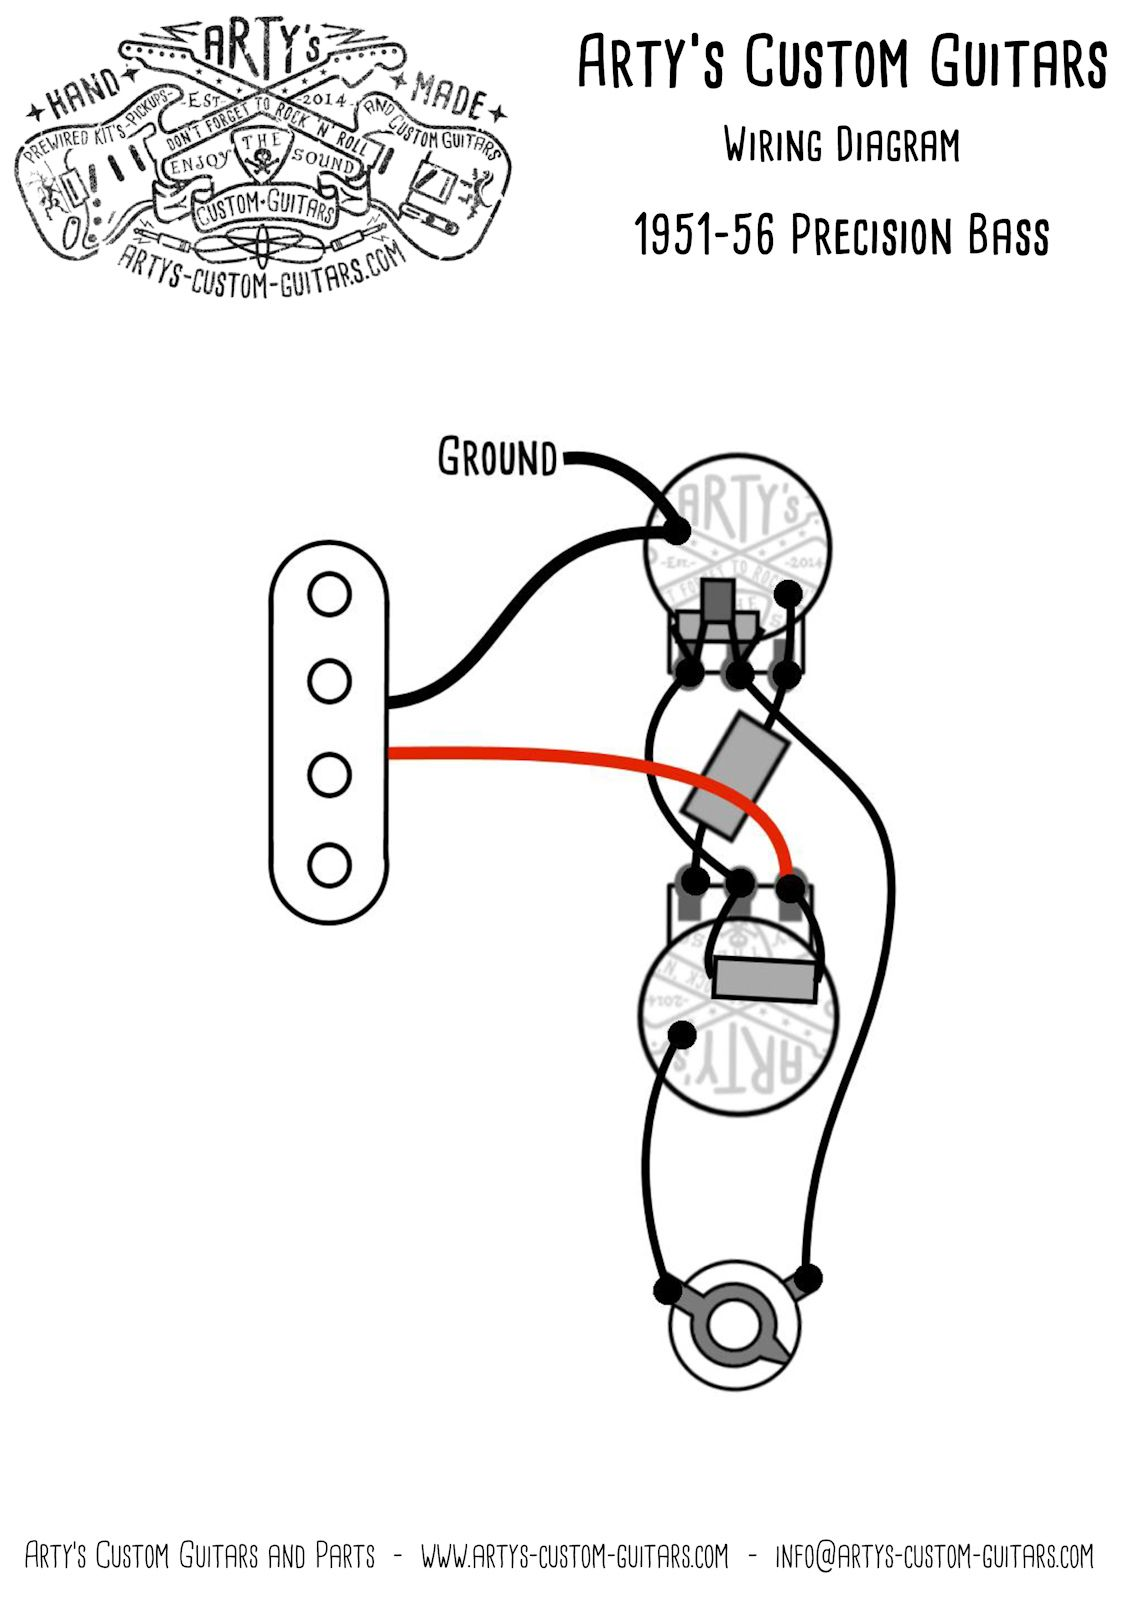 [GJFJ_338]  984A Fender Bass Guitar Wiring Diagram | Wiring Library | Fender Bass Wiring Diagram |  | Wiring Library